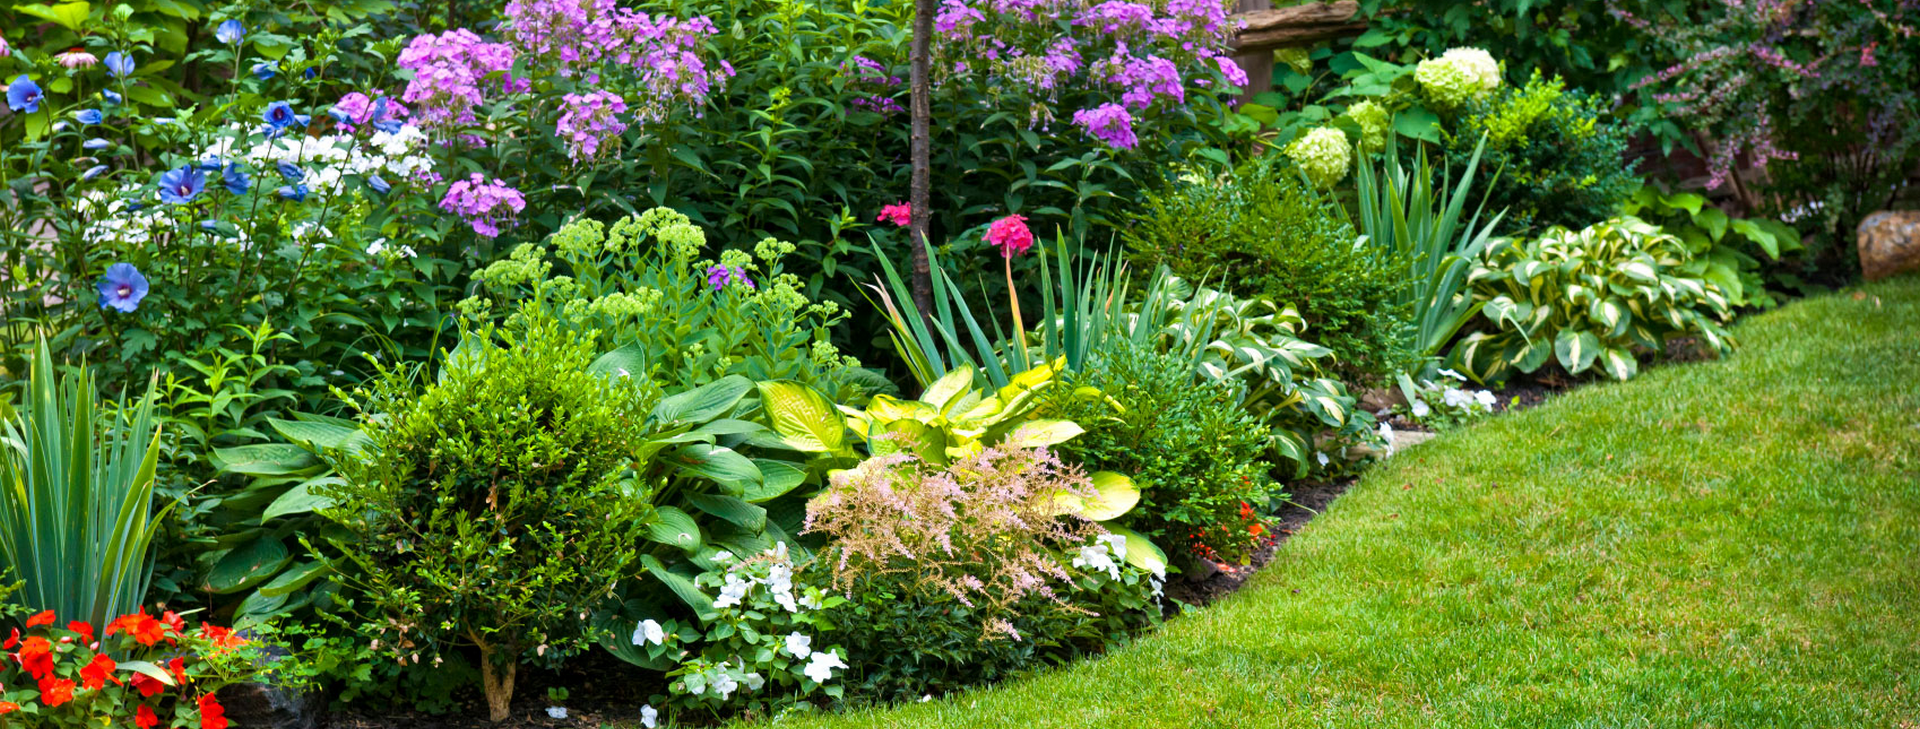 Your lawn and landscape<br /> the way that it should